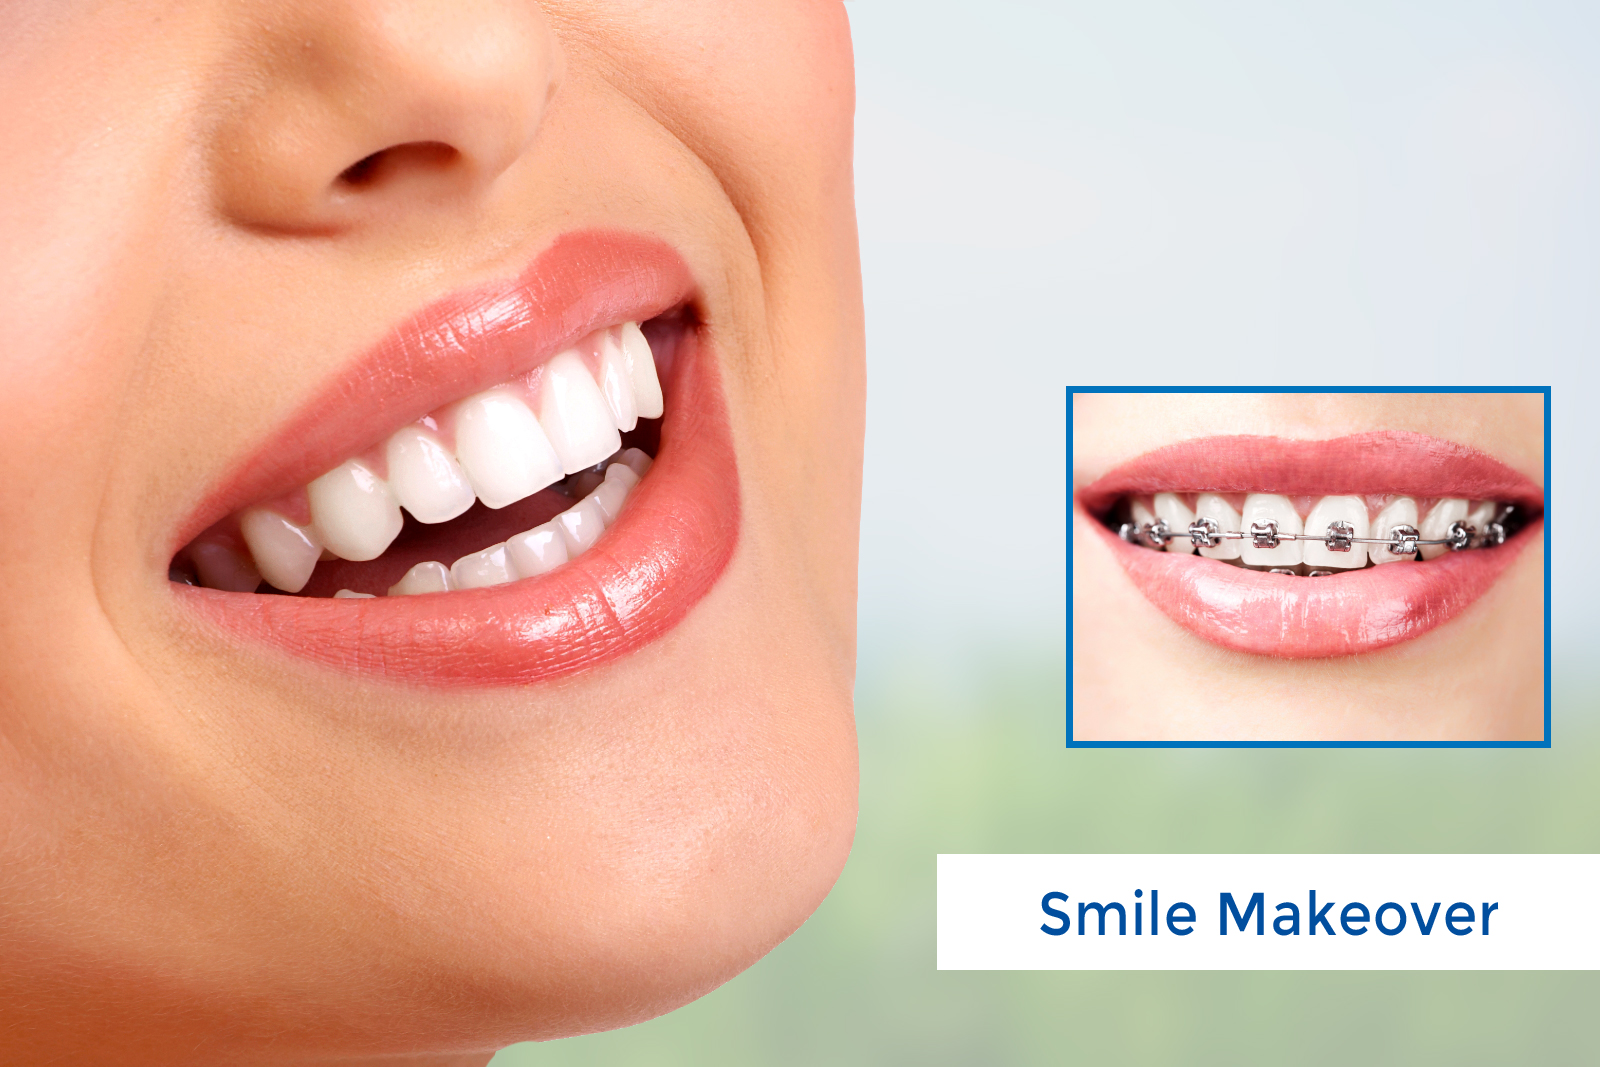 Cosmetic Dentistry allows you a complete New Way to Smile